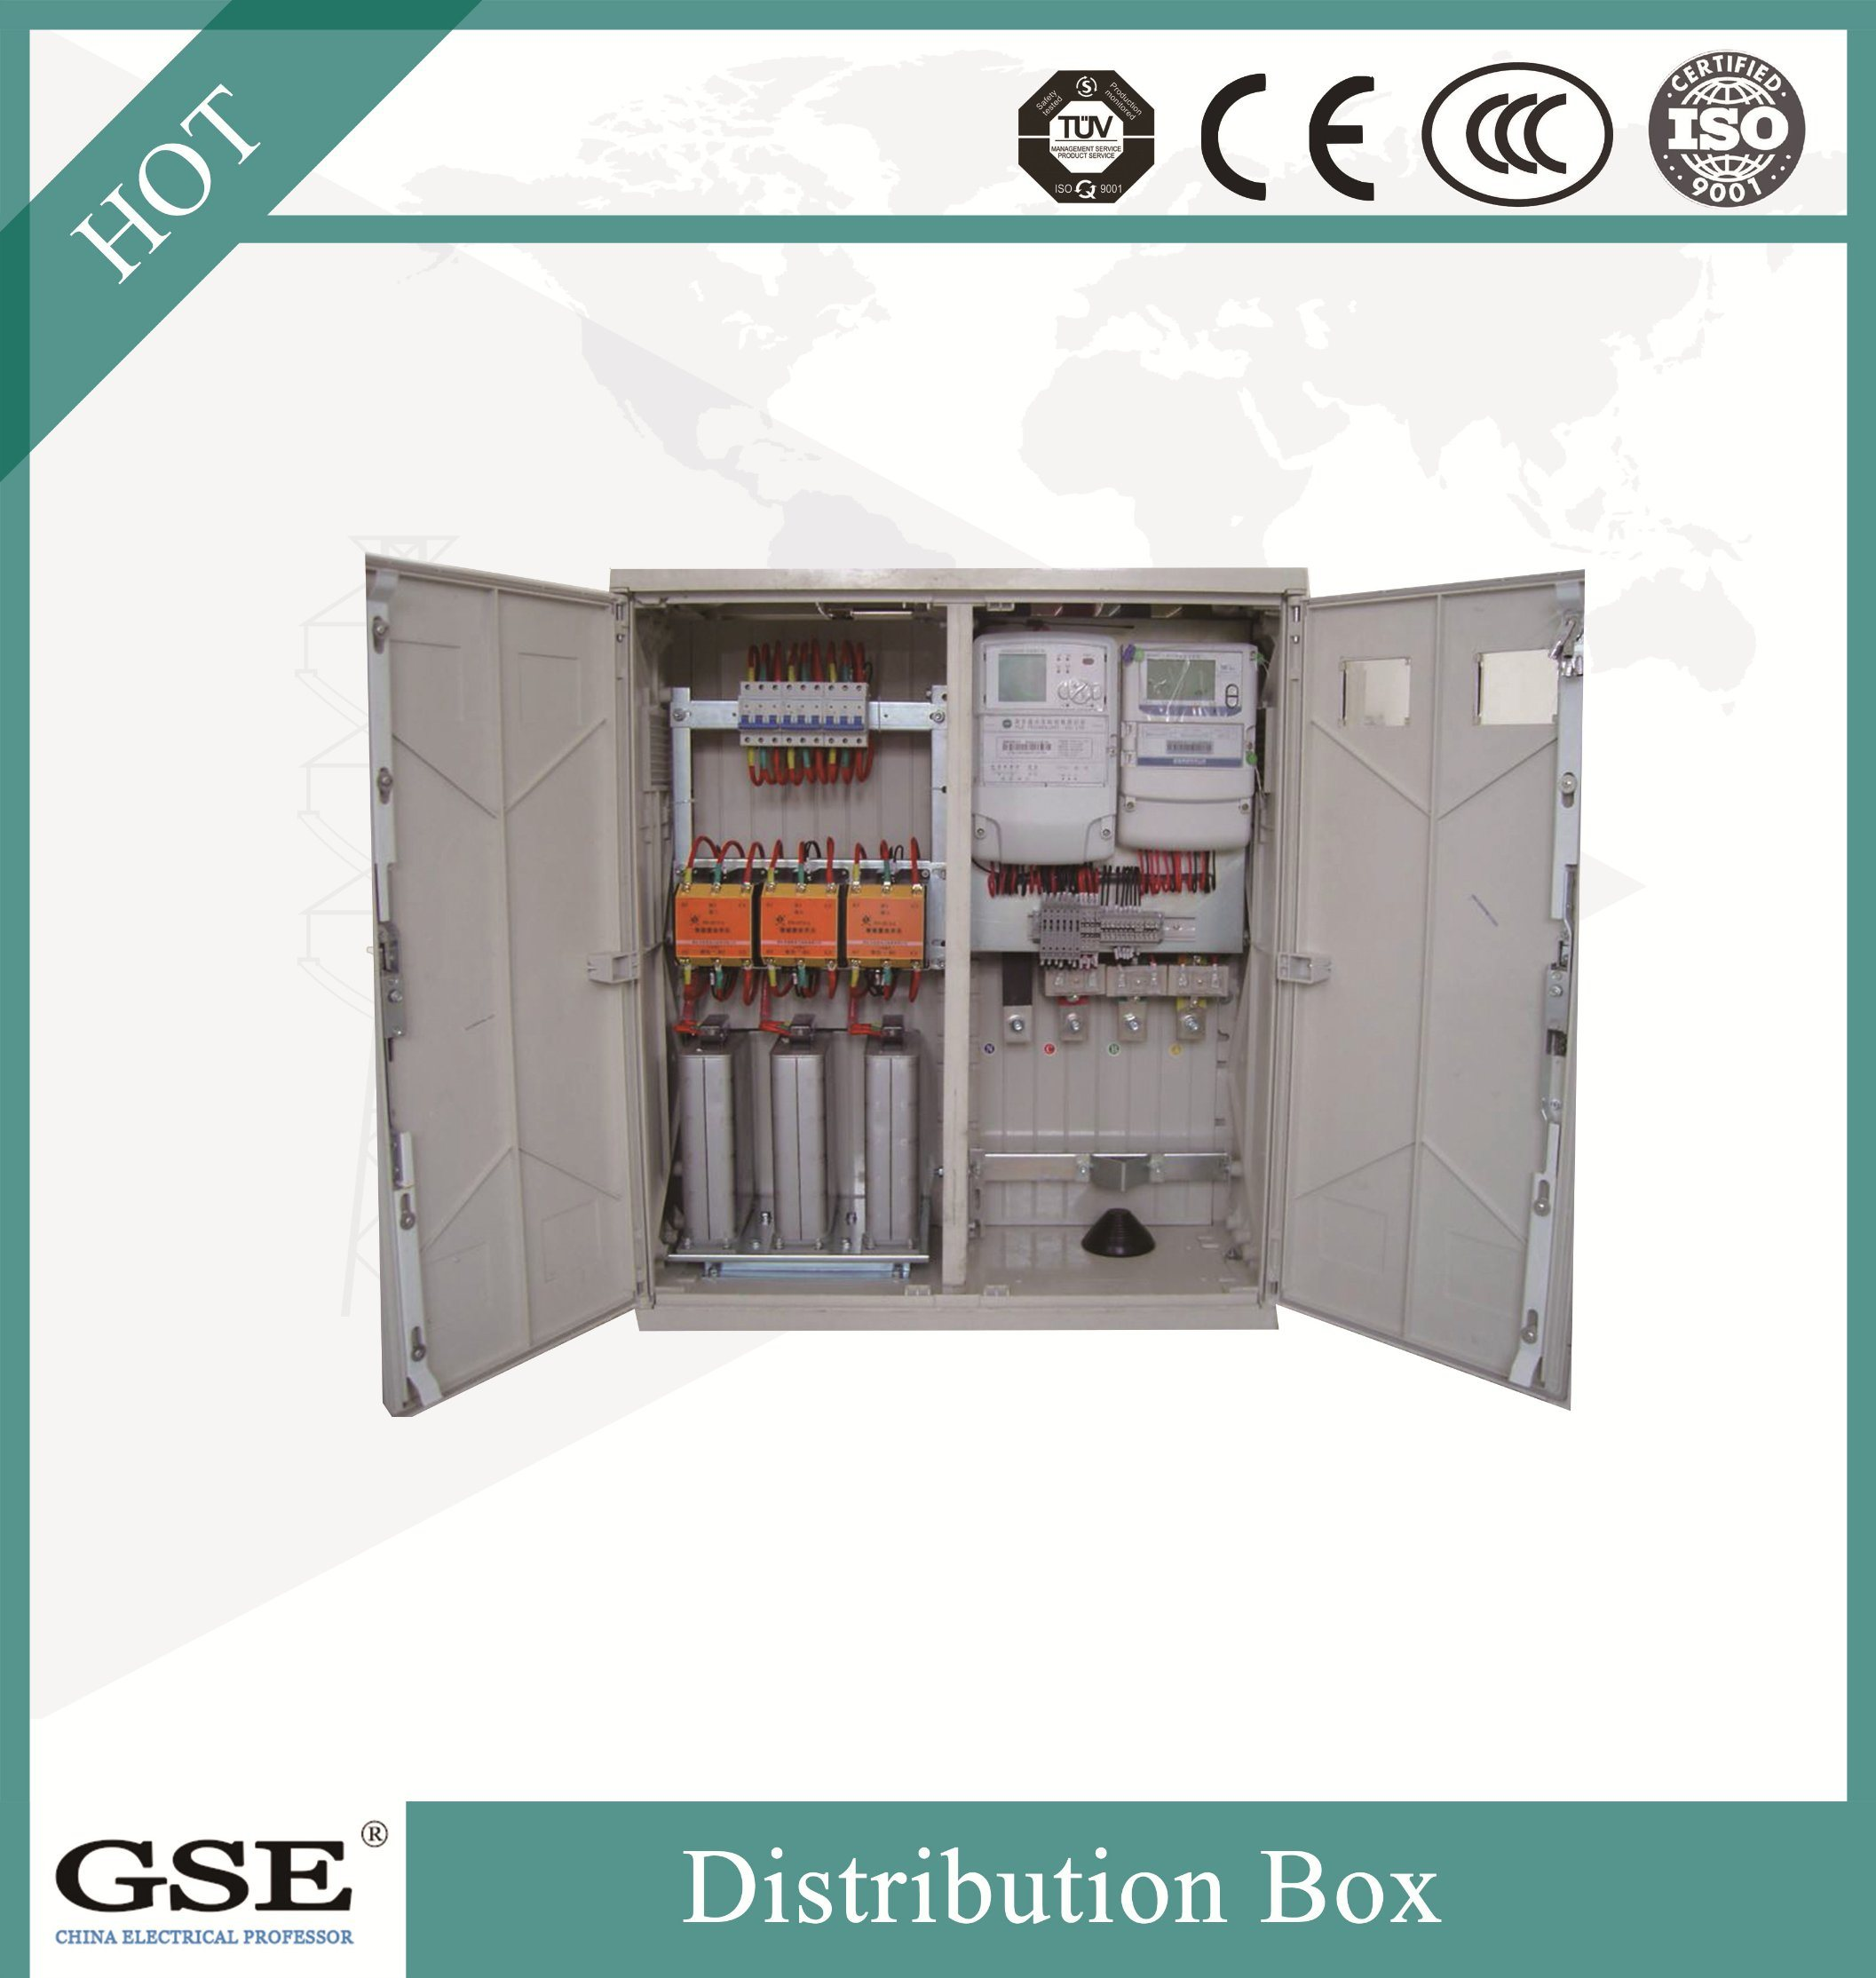 Jp-01 Outdoor Stainless Steel Water-Proof IP 56 Integrated/Comprehensive Distribution Box with Compensation/Control/Terminal/Lightning Function